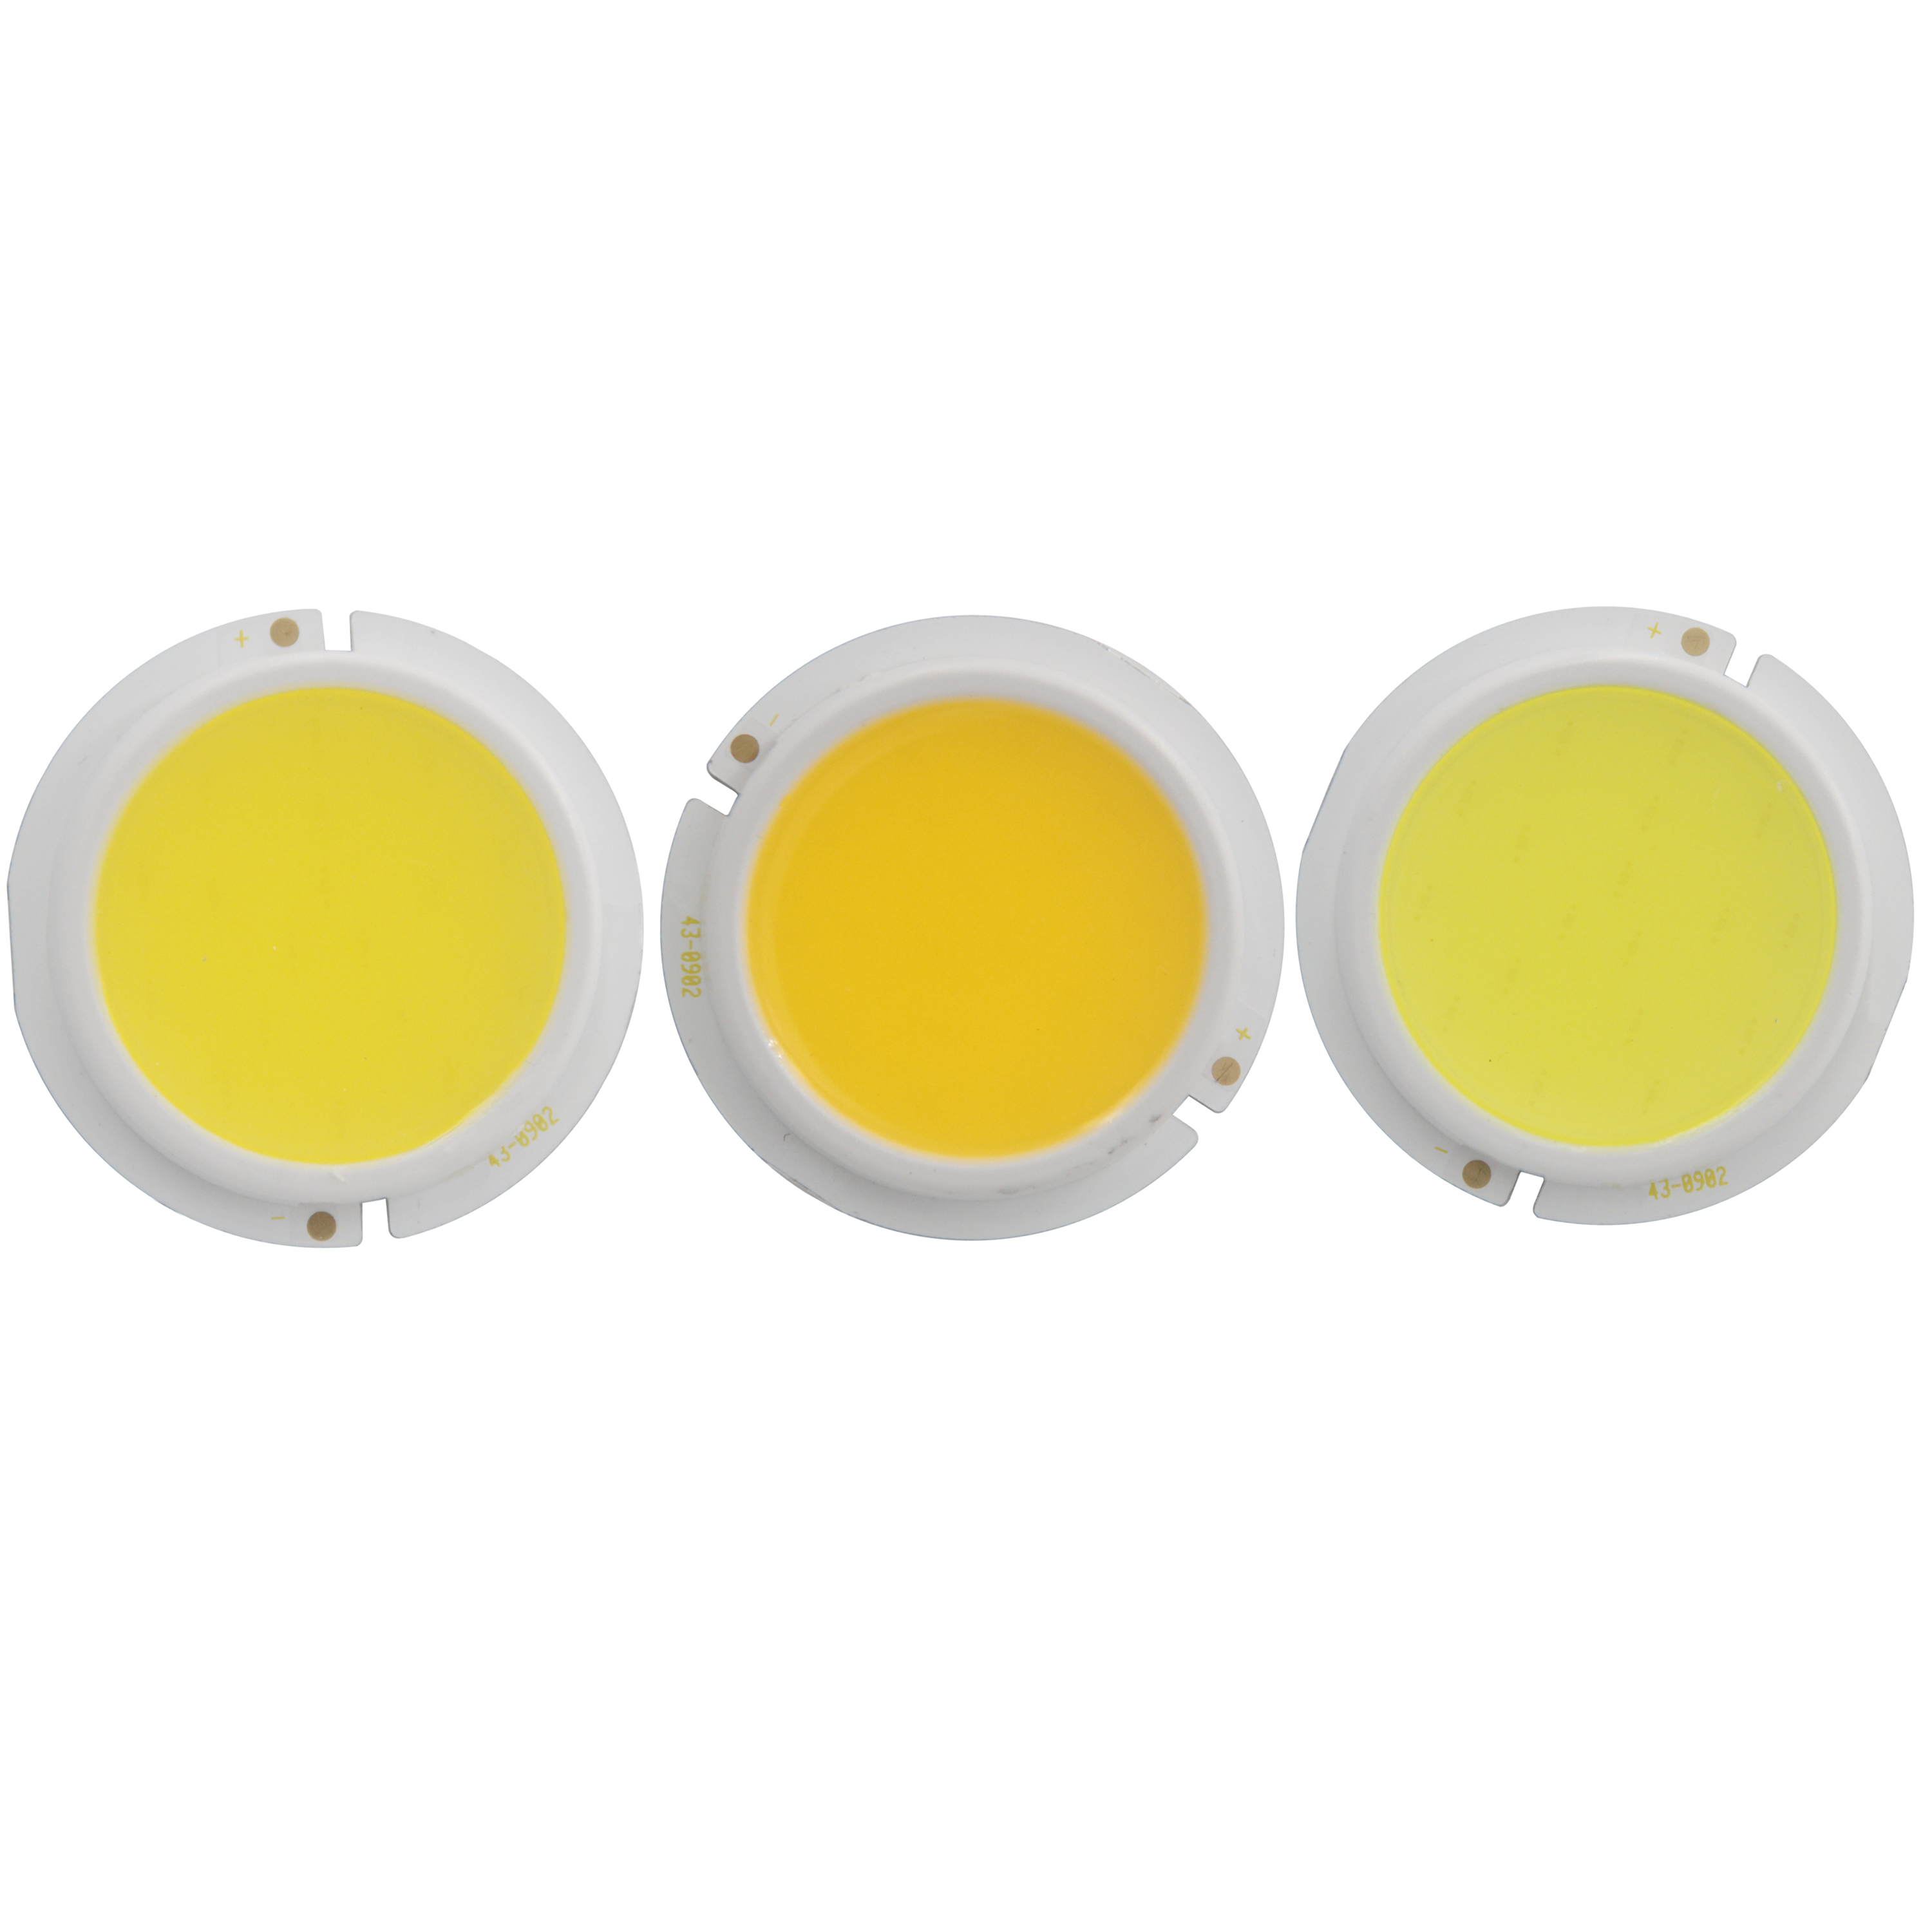 10PCS 43mm thicken LED COB Light Source for spotlight bulb lamp Module genesis chip 3W 5W 7W 9W Warm Nature White COB LED in LED Bulbs Tubes from Lights Lighting